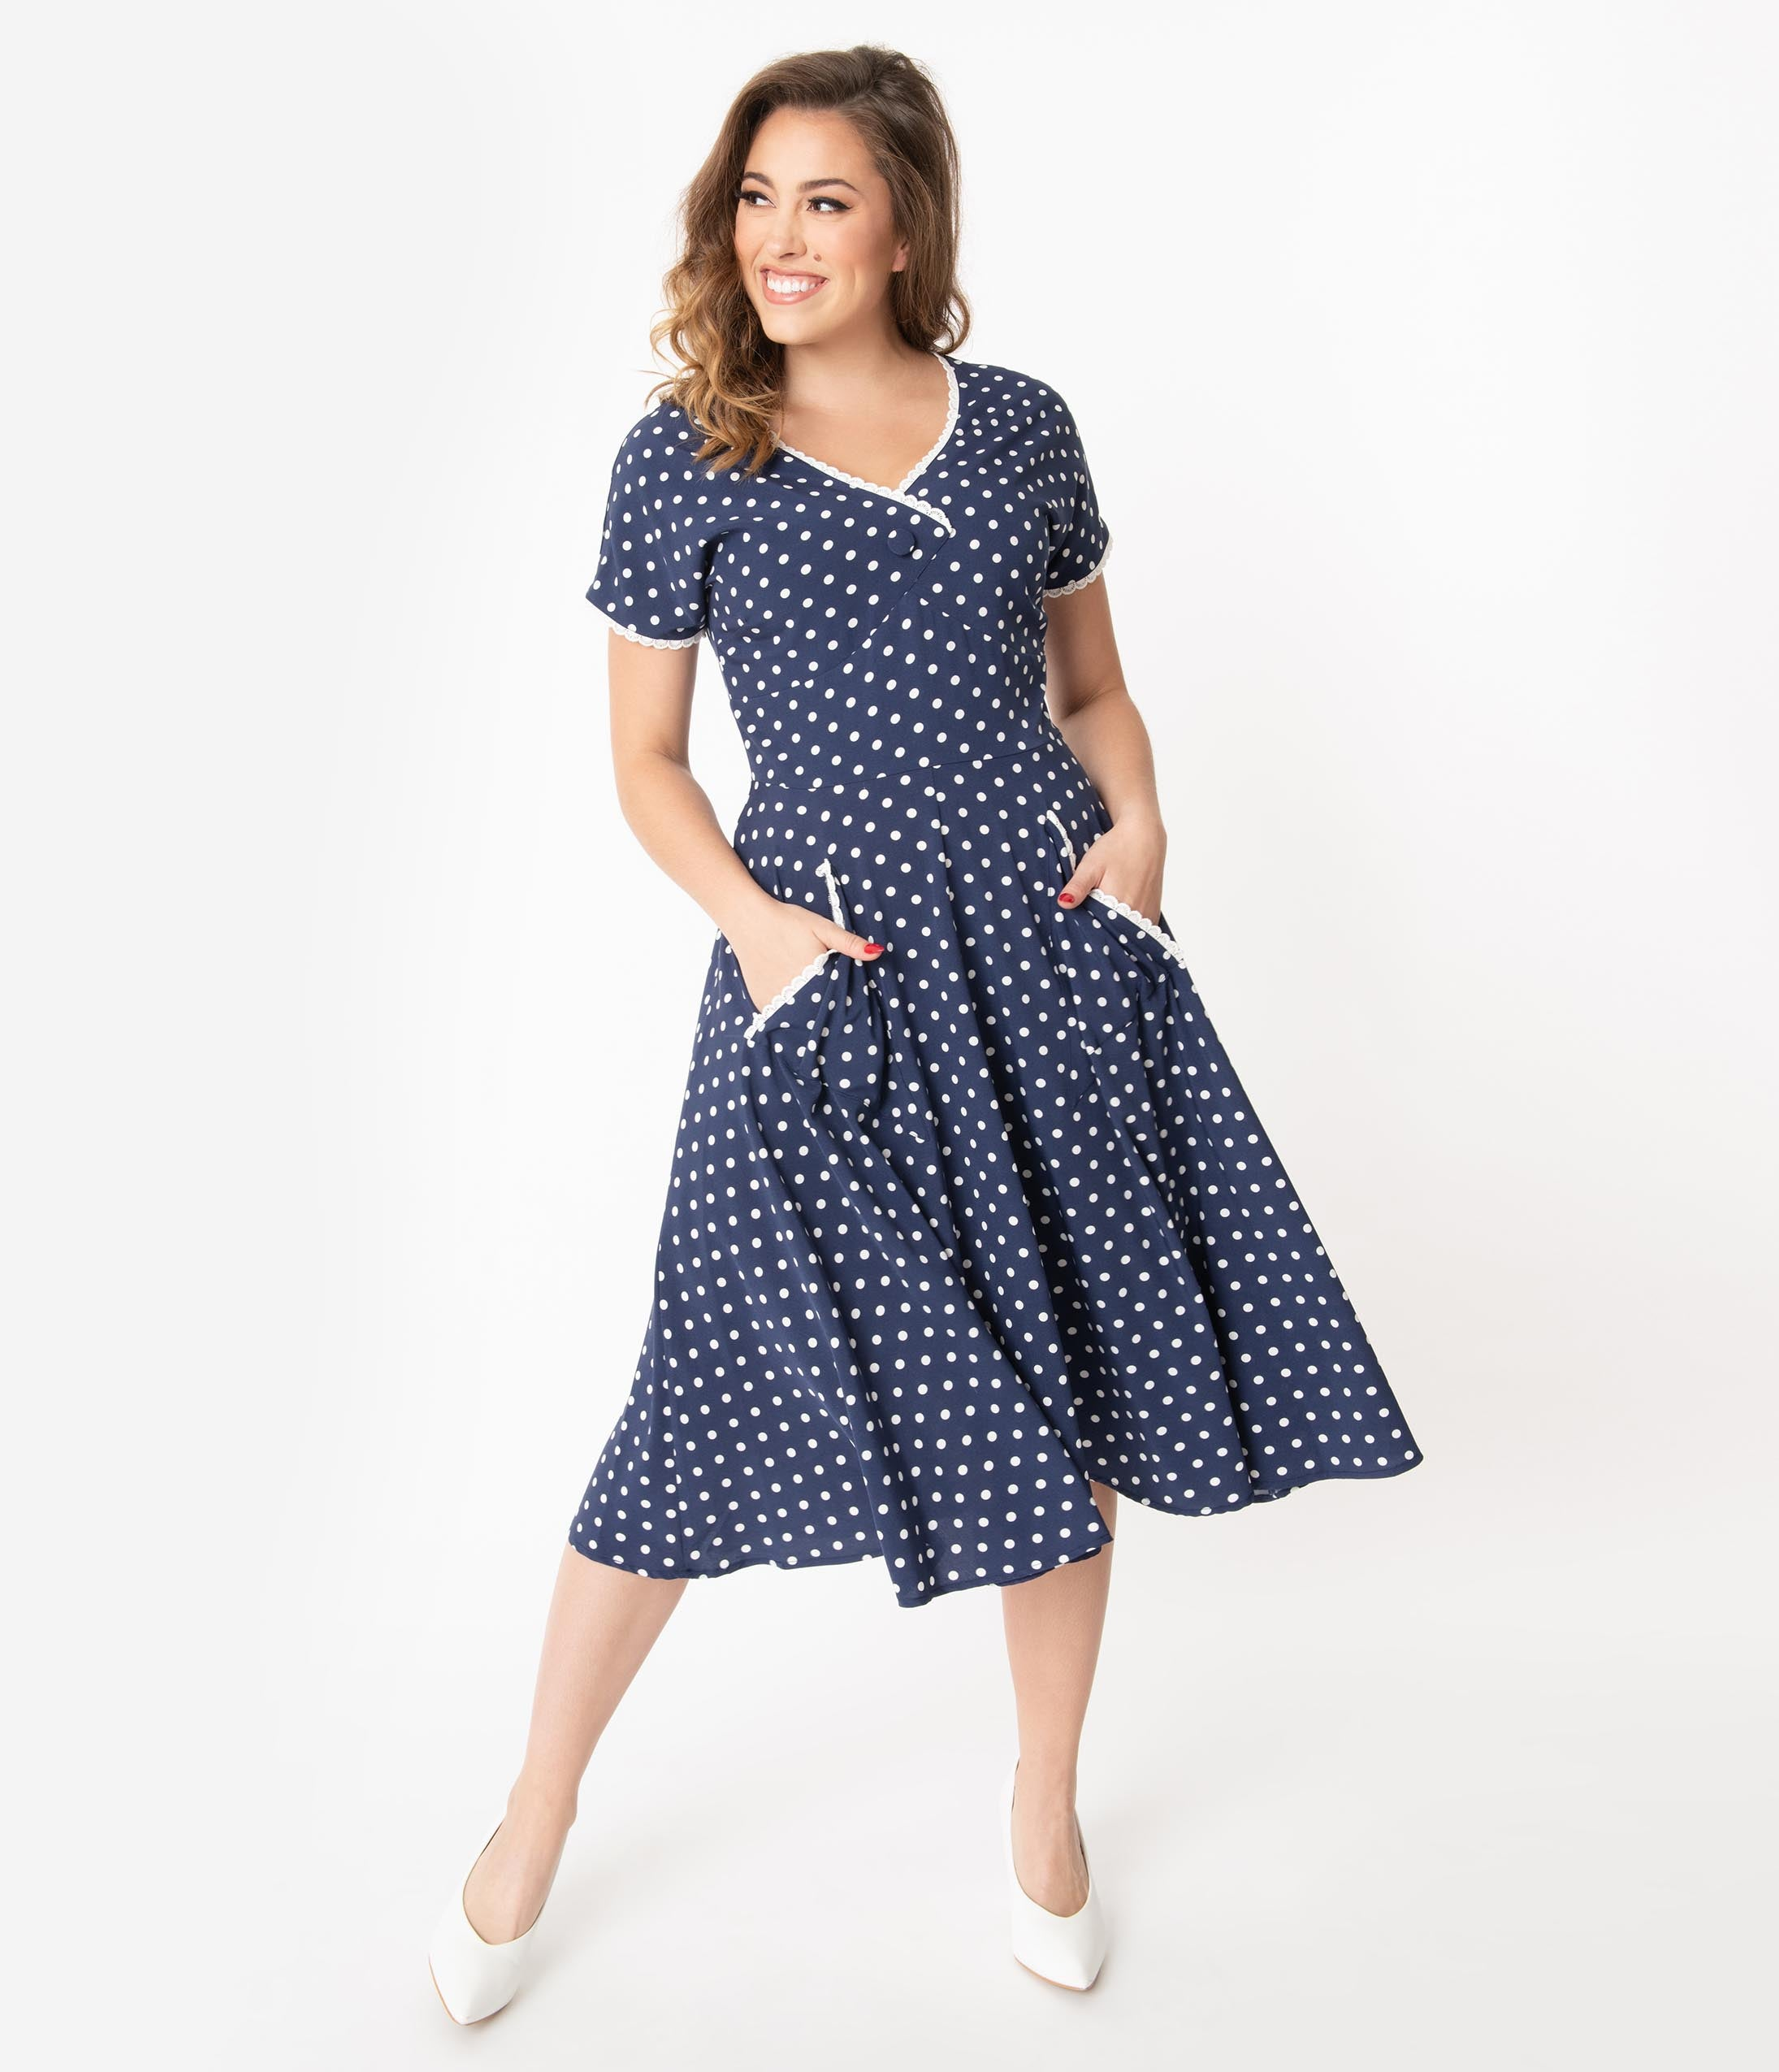 1950s Dresses, 50s Dresses | 1950s Style Dresses Unique Vintage 1950S Navy  White Polka Dot Goldie Swing Dress $68.00 AT vintagedancer.com